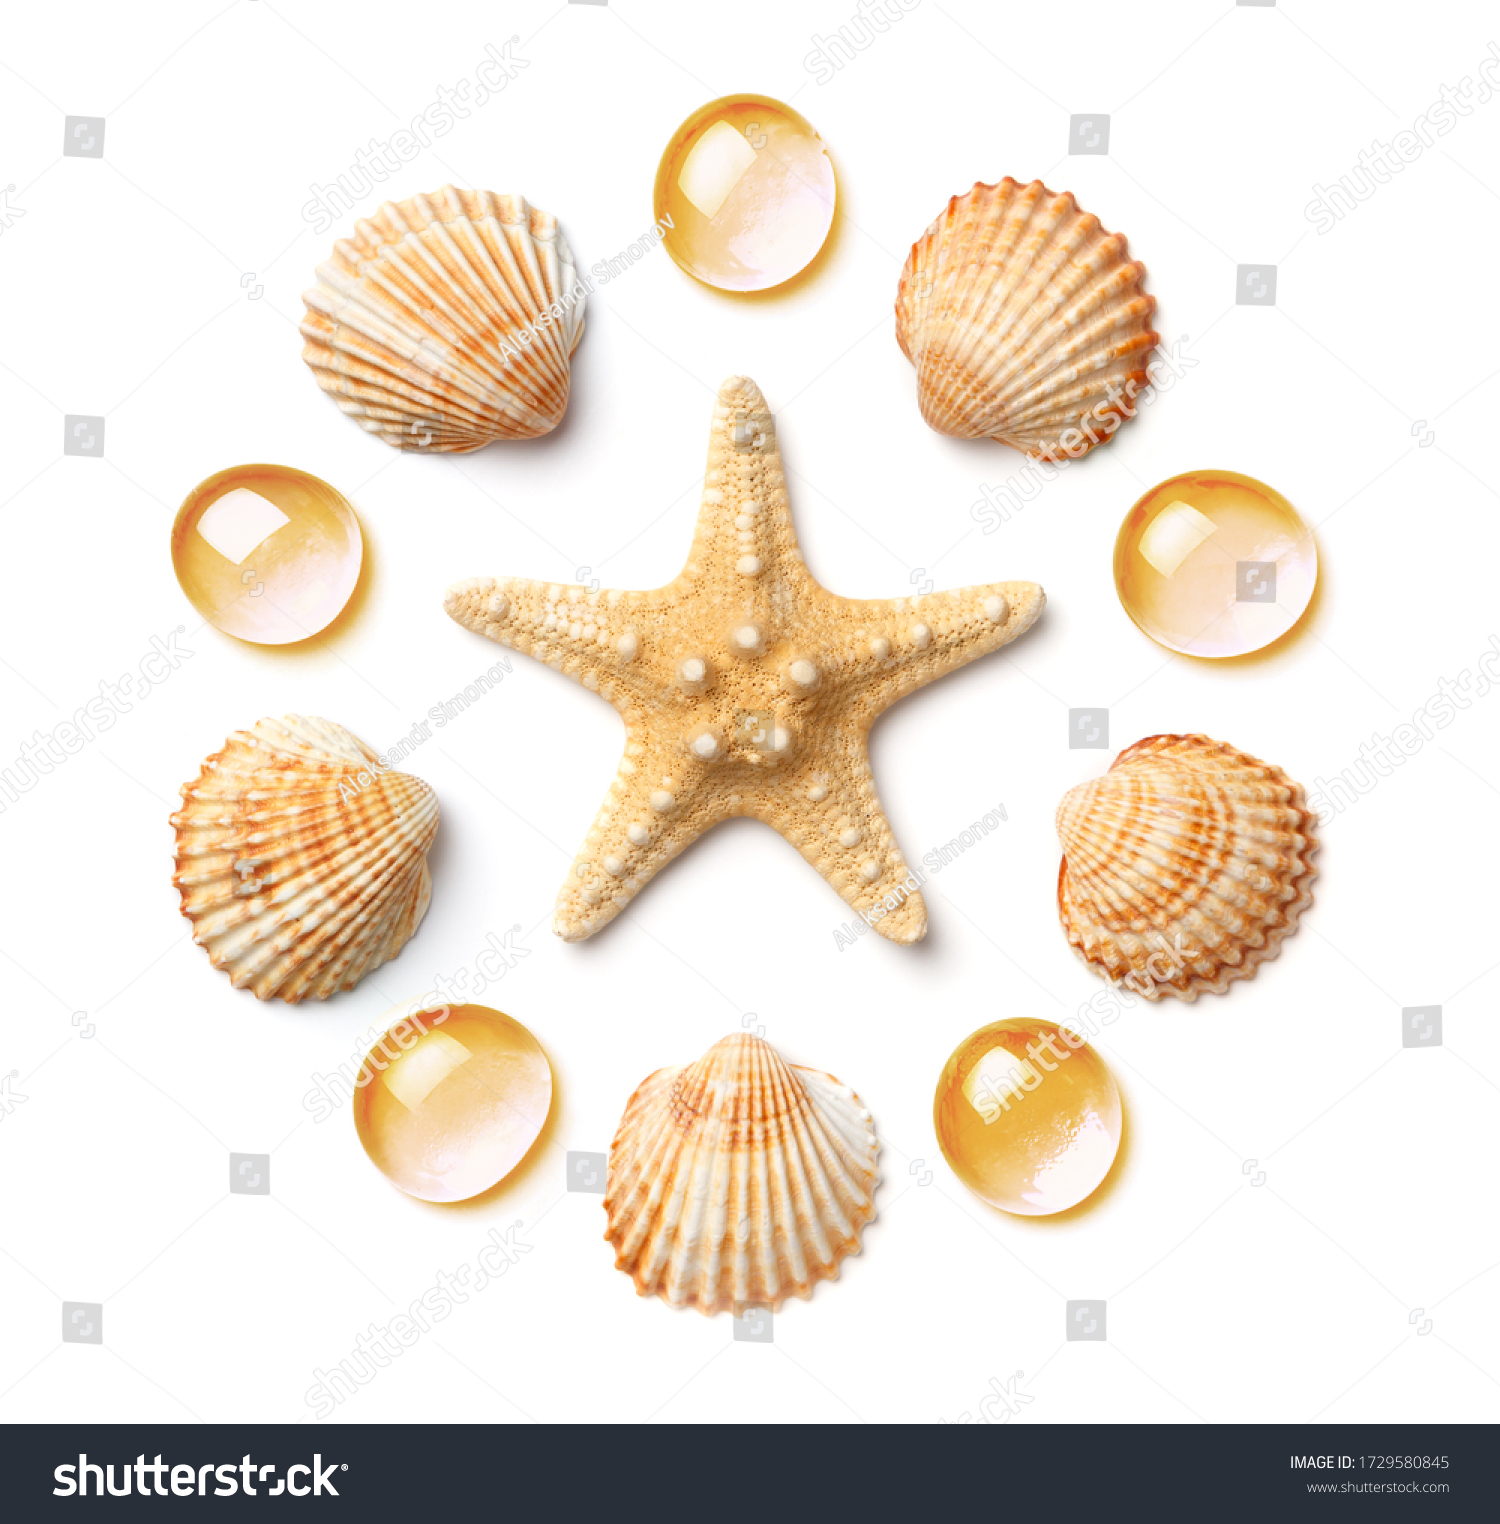 Pattern in the form of a circle of sea shells and starfish, isolated on a white background. Flat lay, top view #1729580845